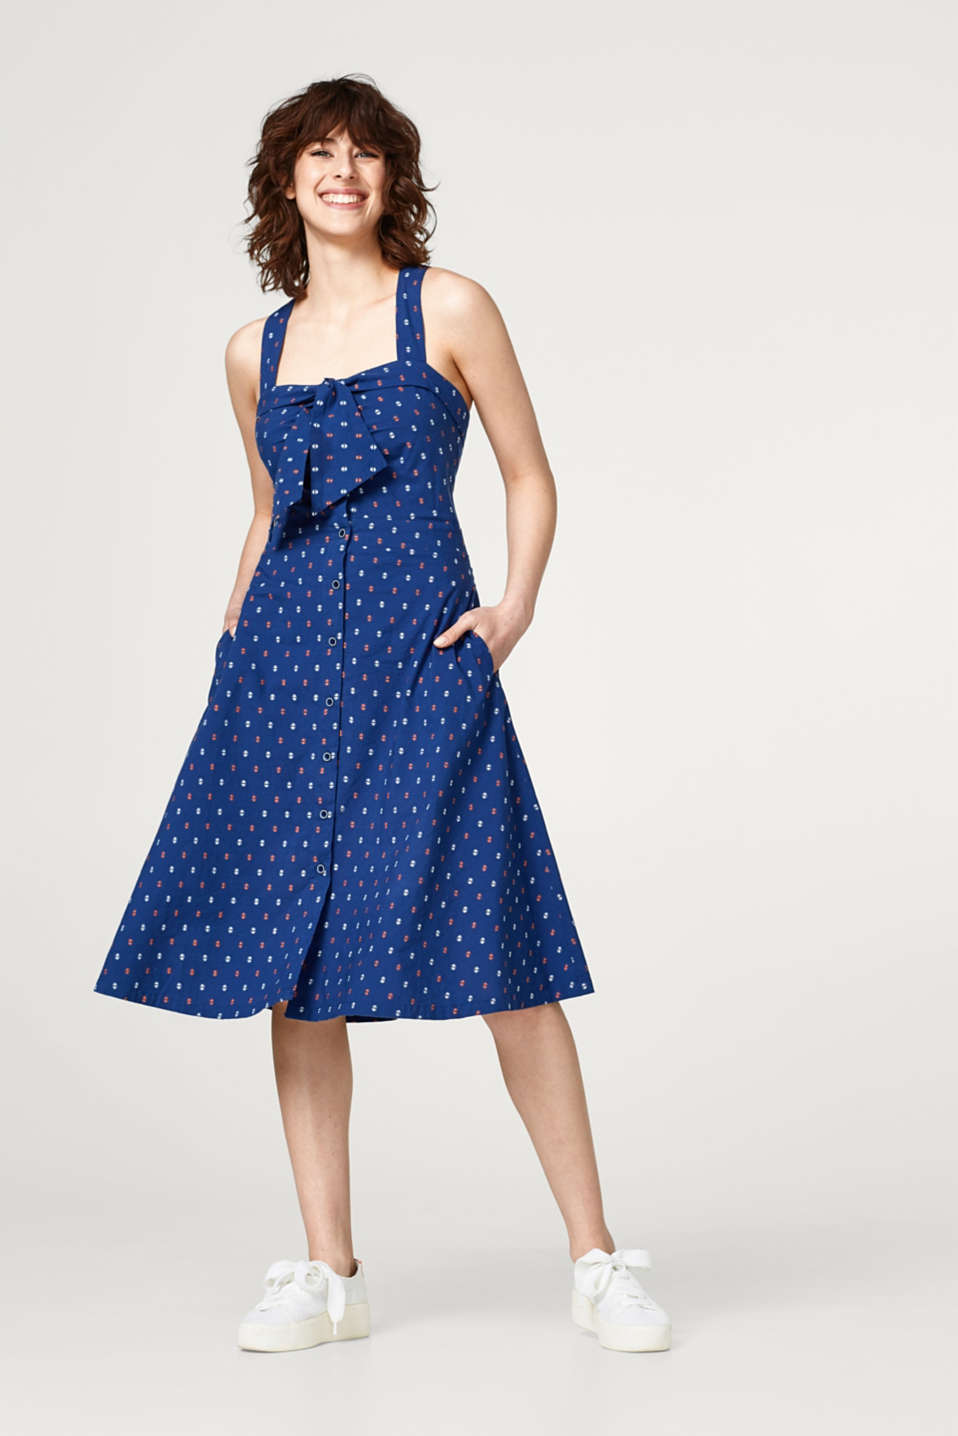 Flared dress with a woven pattern, cotton